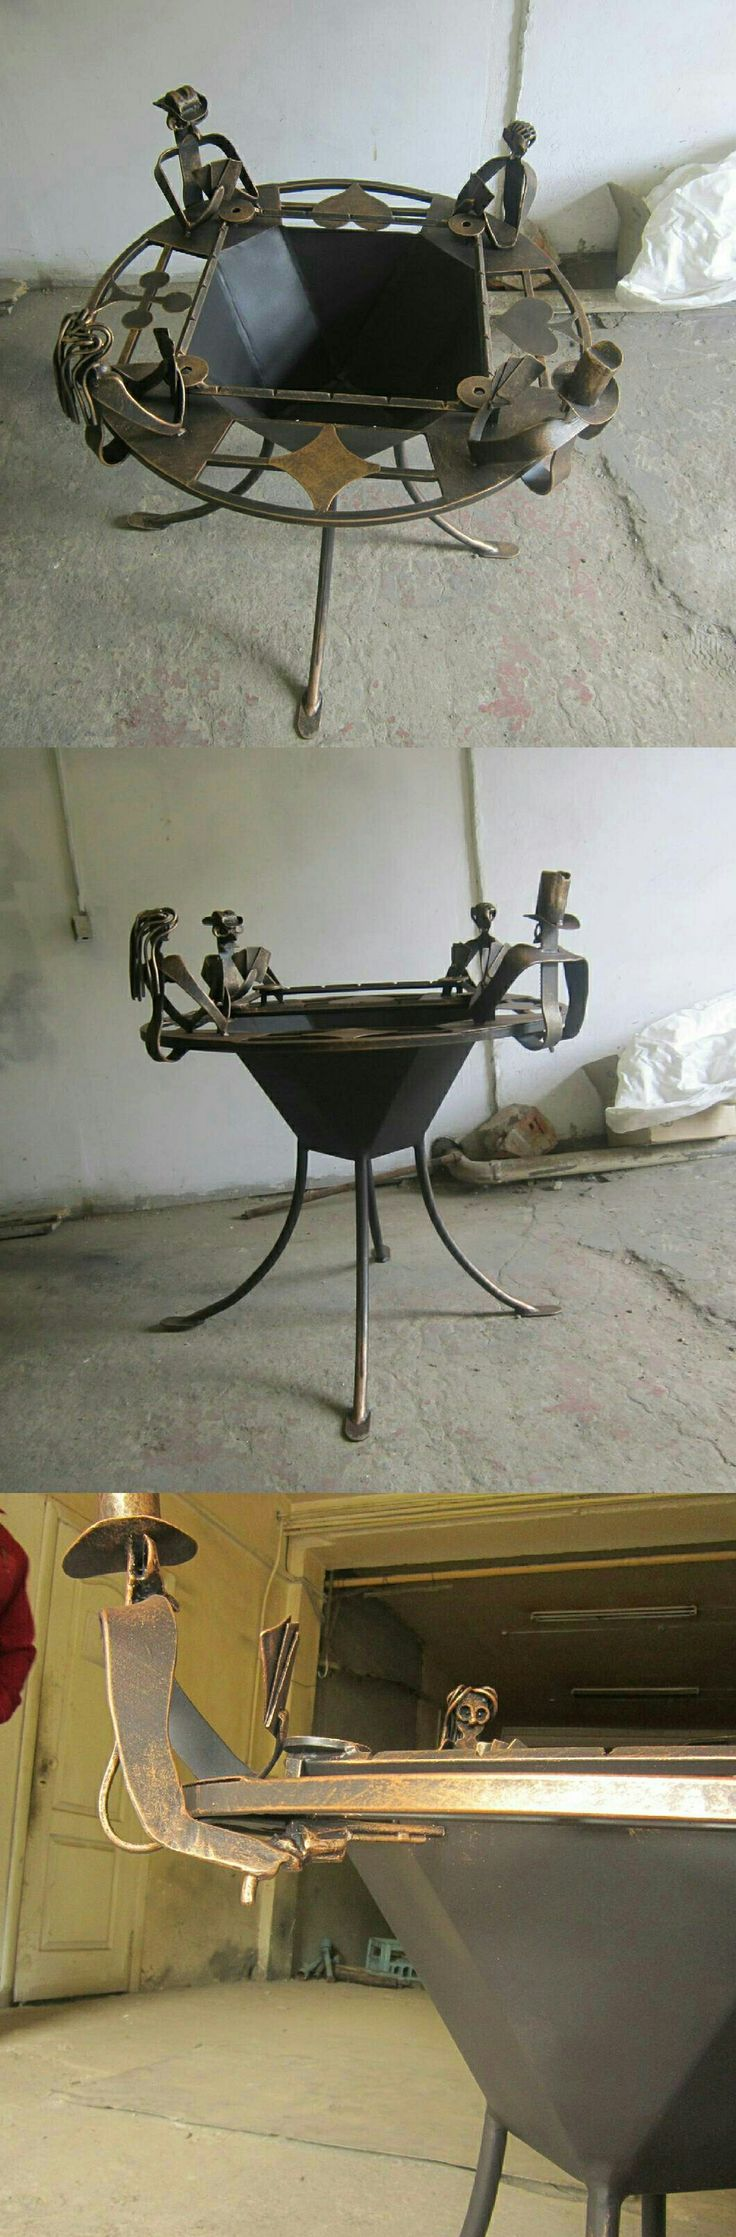 803 best печи images on pinterest fire pits cnc machine and